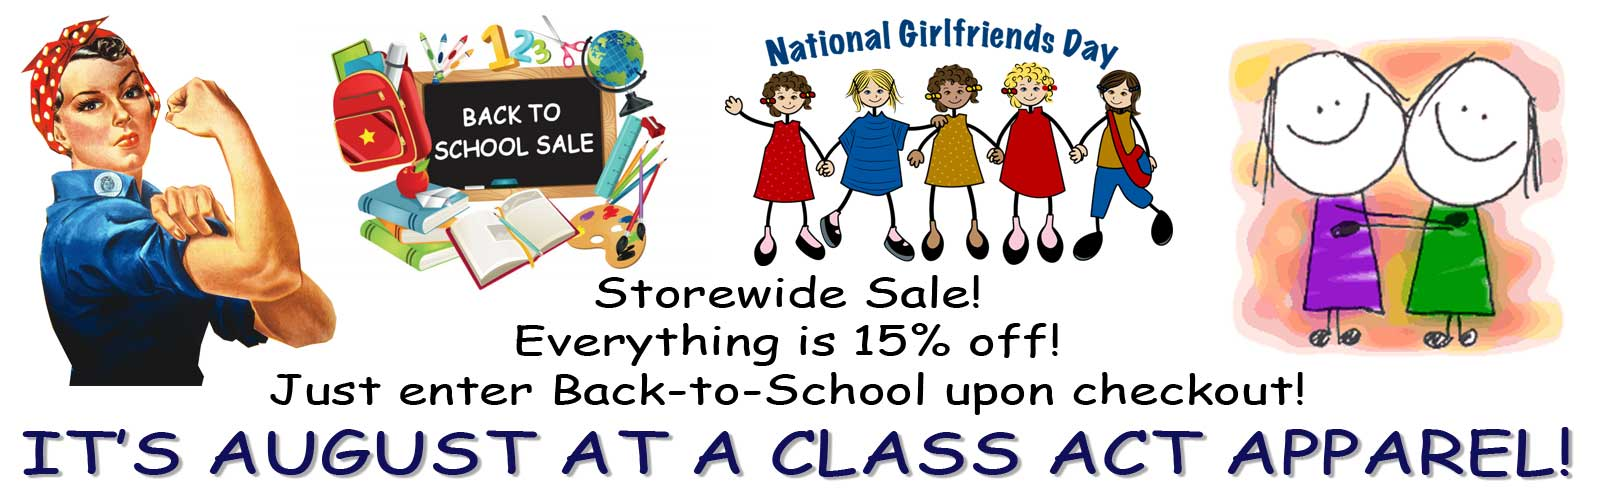 August Back-to-School Specials - 15% off